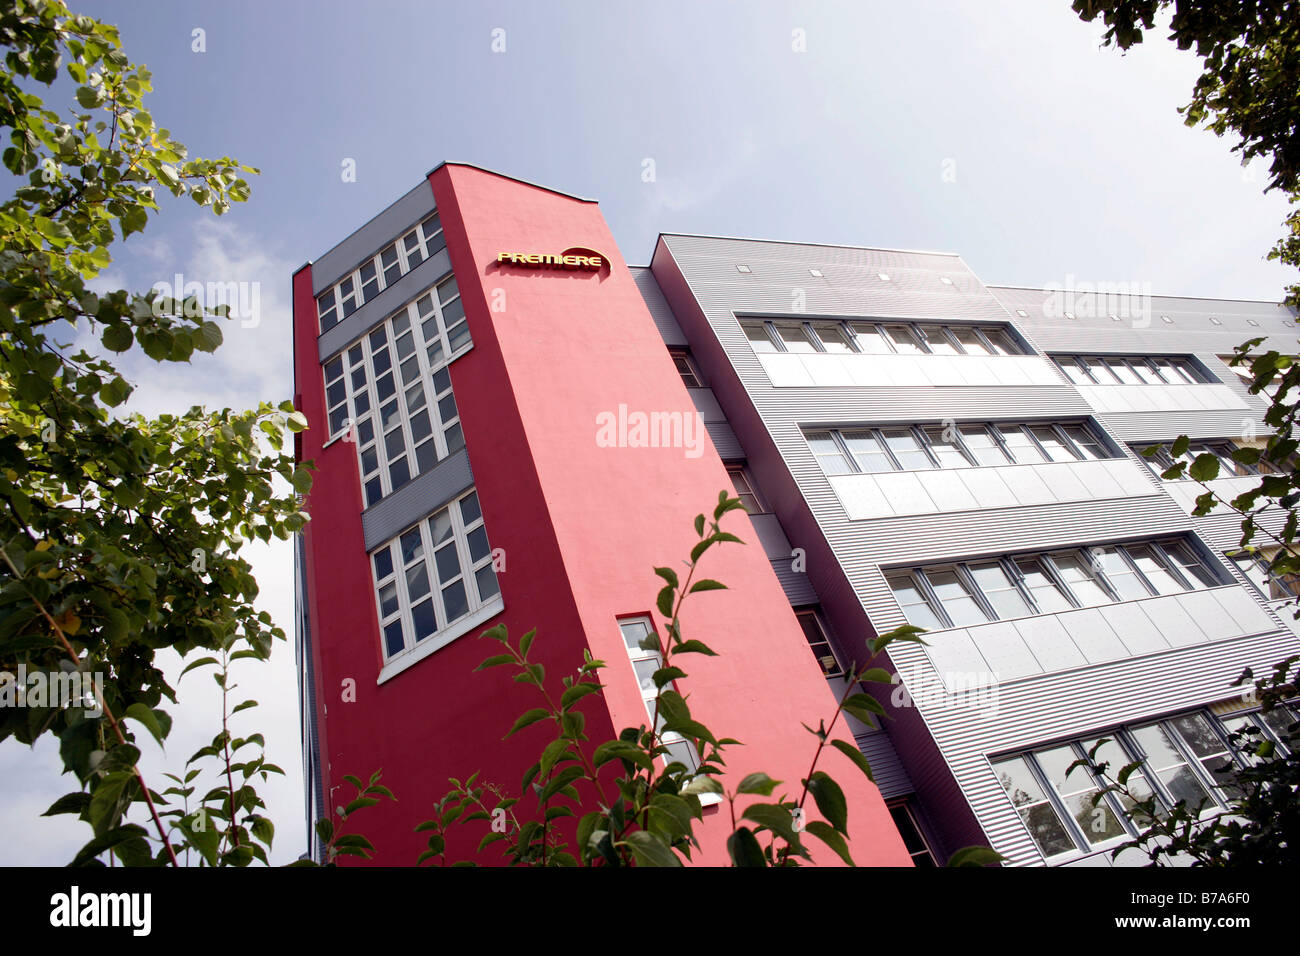 Premiere World Company Headquarters in Medienallee Street in Unterfoehring near Munich, Bavaria, Germany, Europe - Stock Image